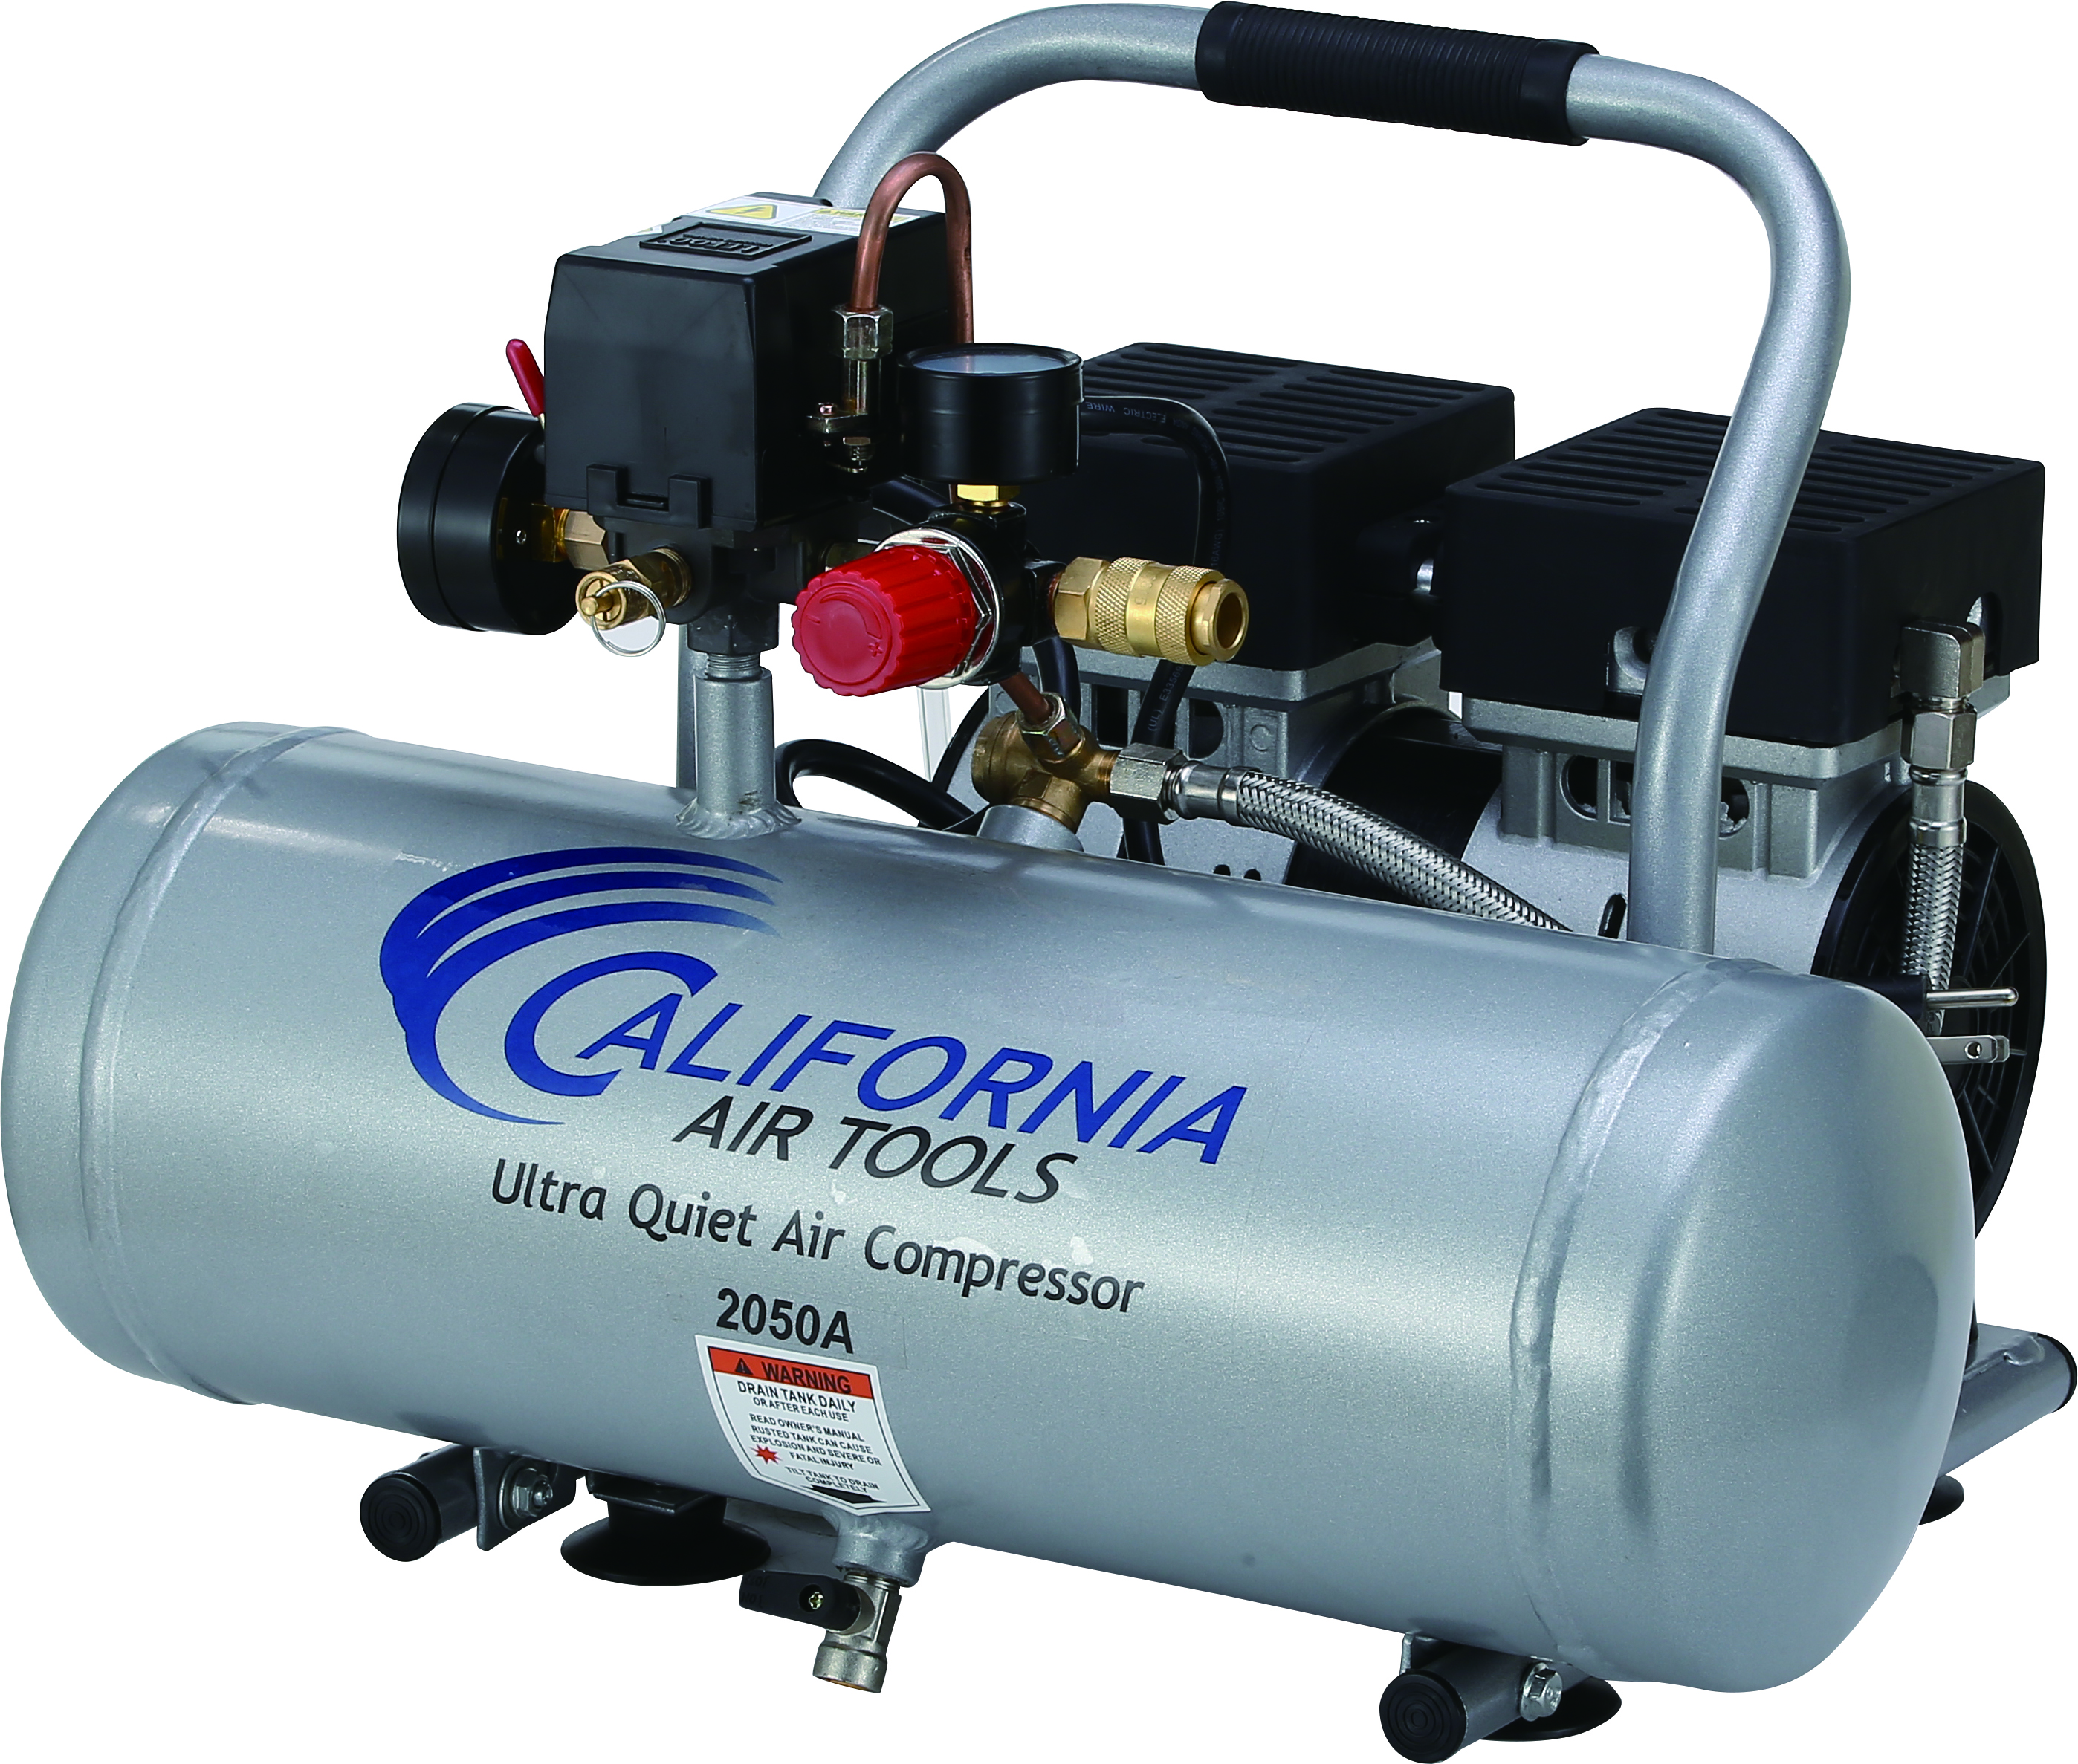 California Air Tools 2050A Ultra Quiet & Oil-Free 1/2 Hp, 2.0 Gal. Aluminum Tank Air Compressor